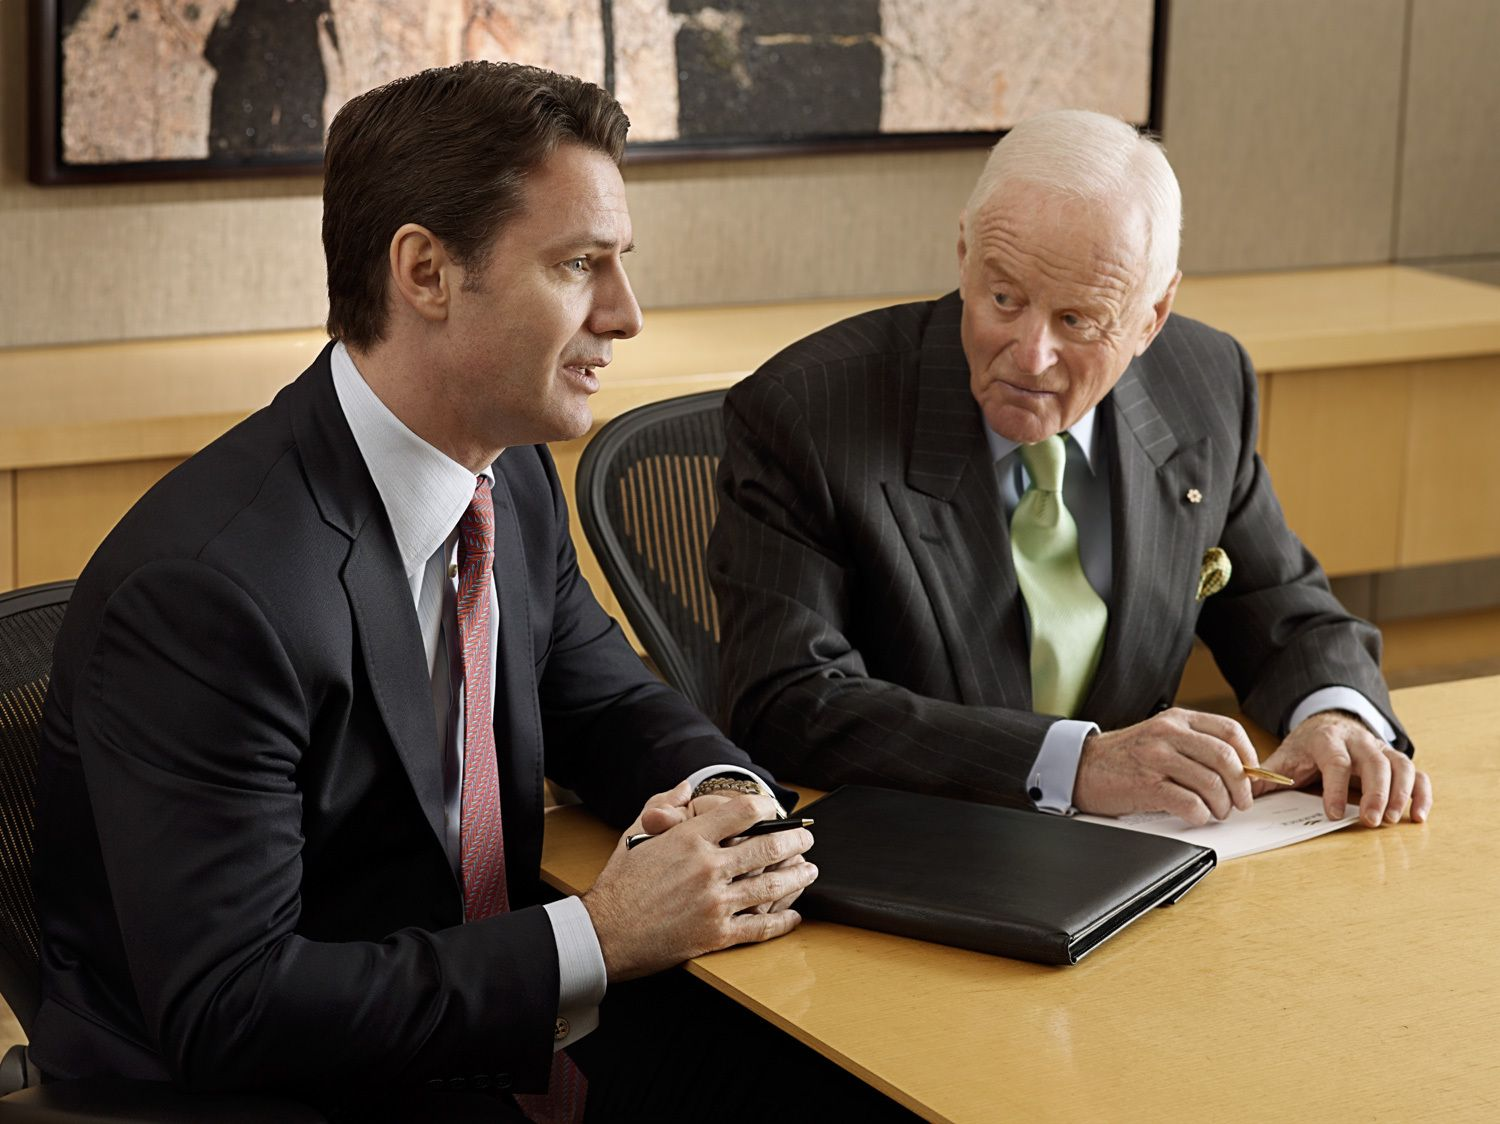 Barrick Gold - Aaron Reagent, President & CEO, and Peter Munk, Founder & Chairman of the Board